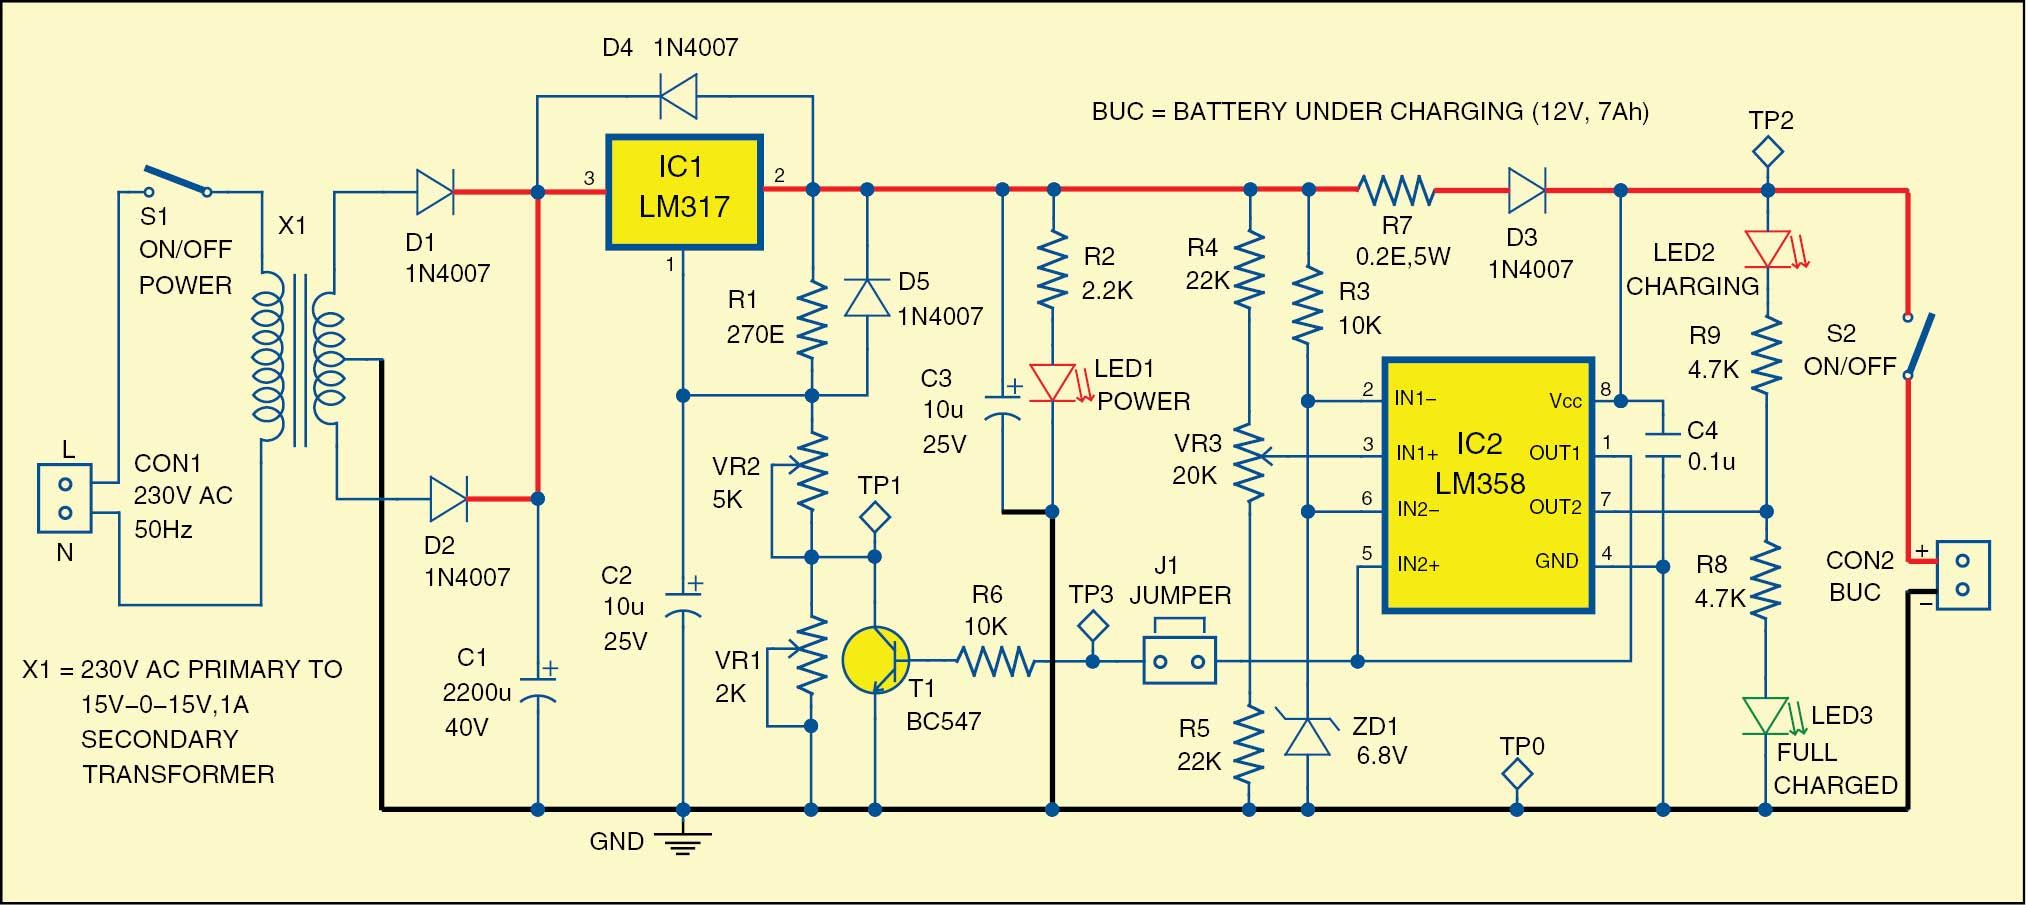 Pin By Tridweep Mal On Technology Pinterest Battery Charger Transformerless Solar Inverter Circuit Homemade Projects Diagram Smartdraw 28 Images How To Make Dc Ac Converter Pv